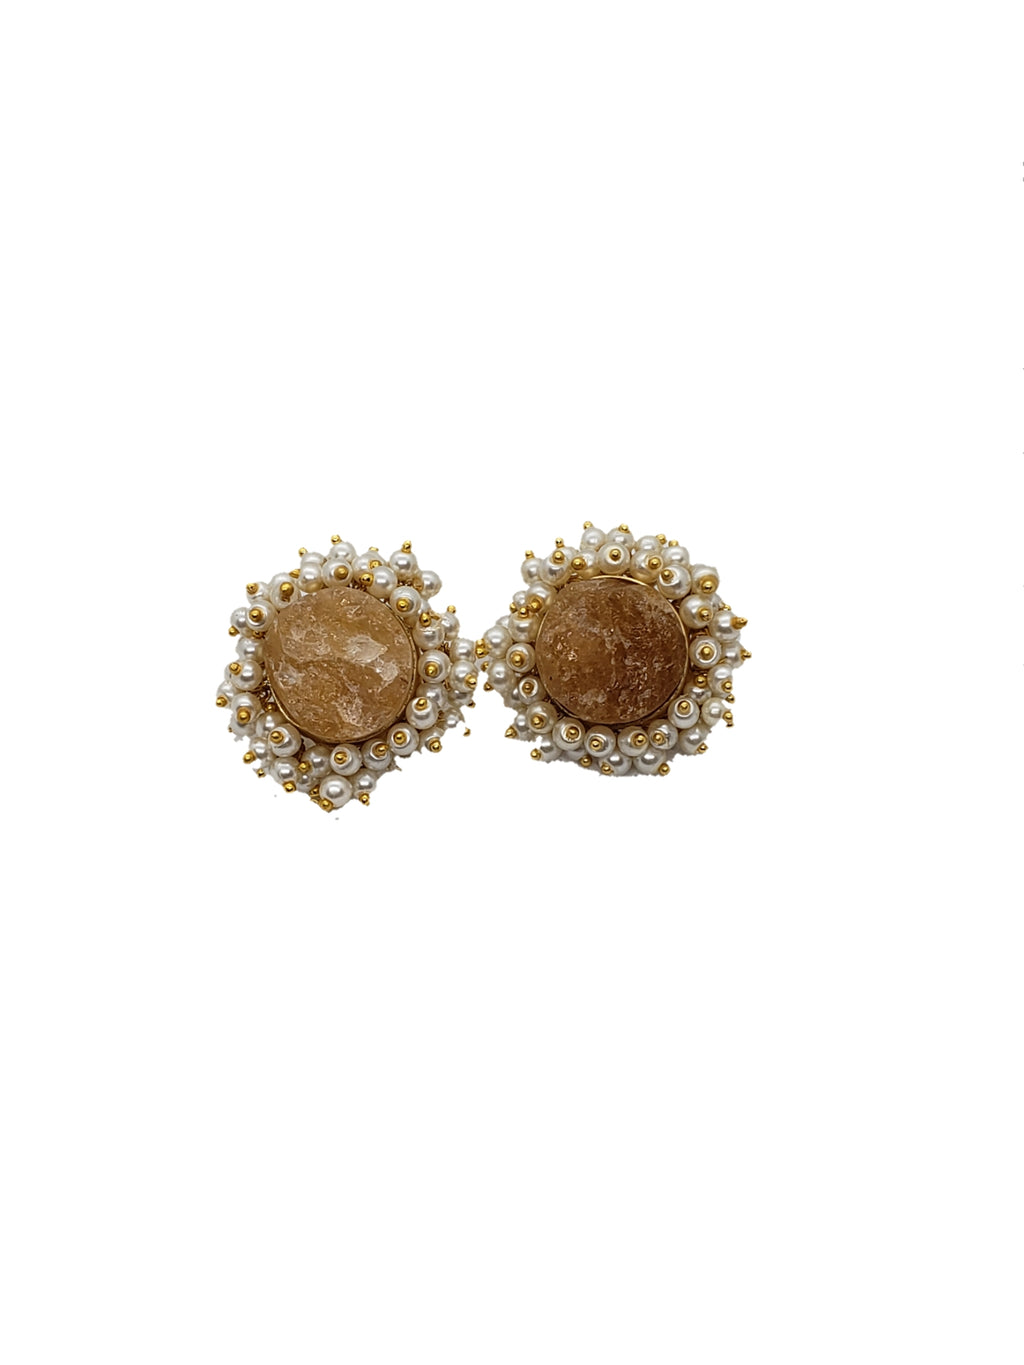 Citrine Stud Earrings - The Bauble Shop